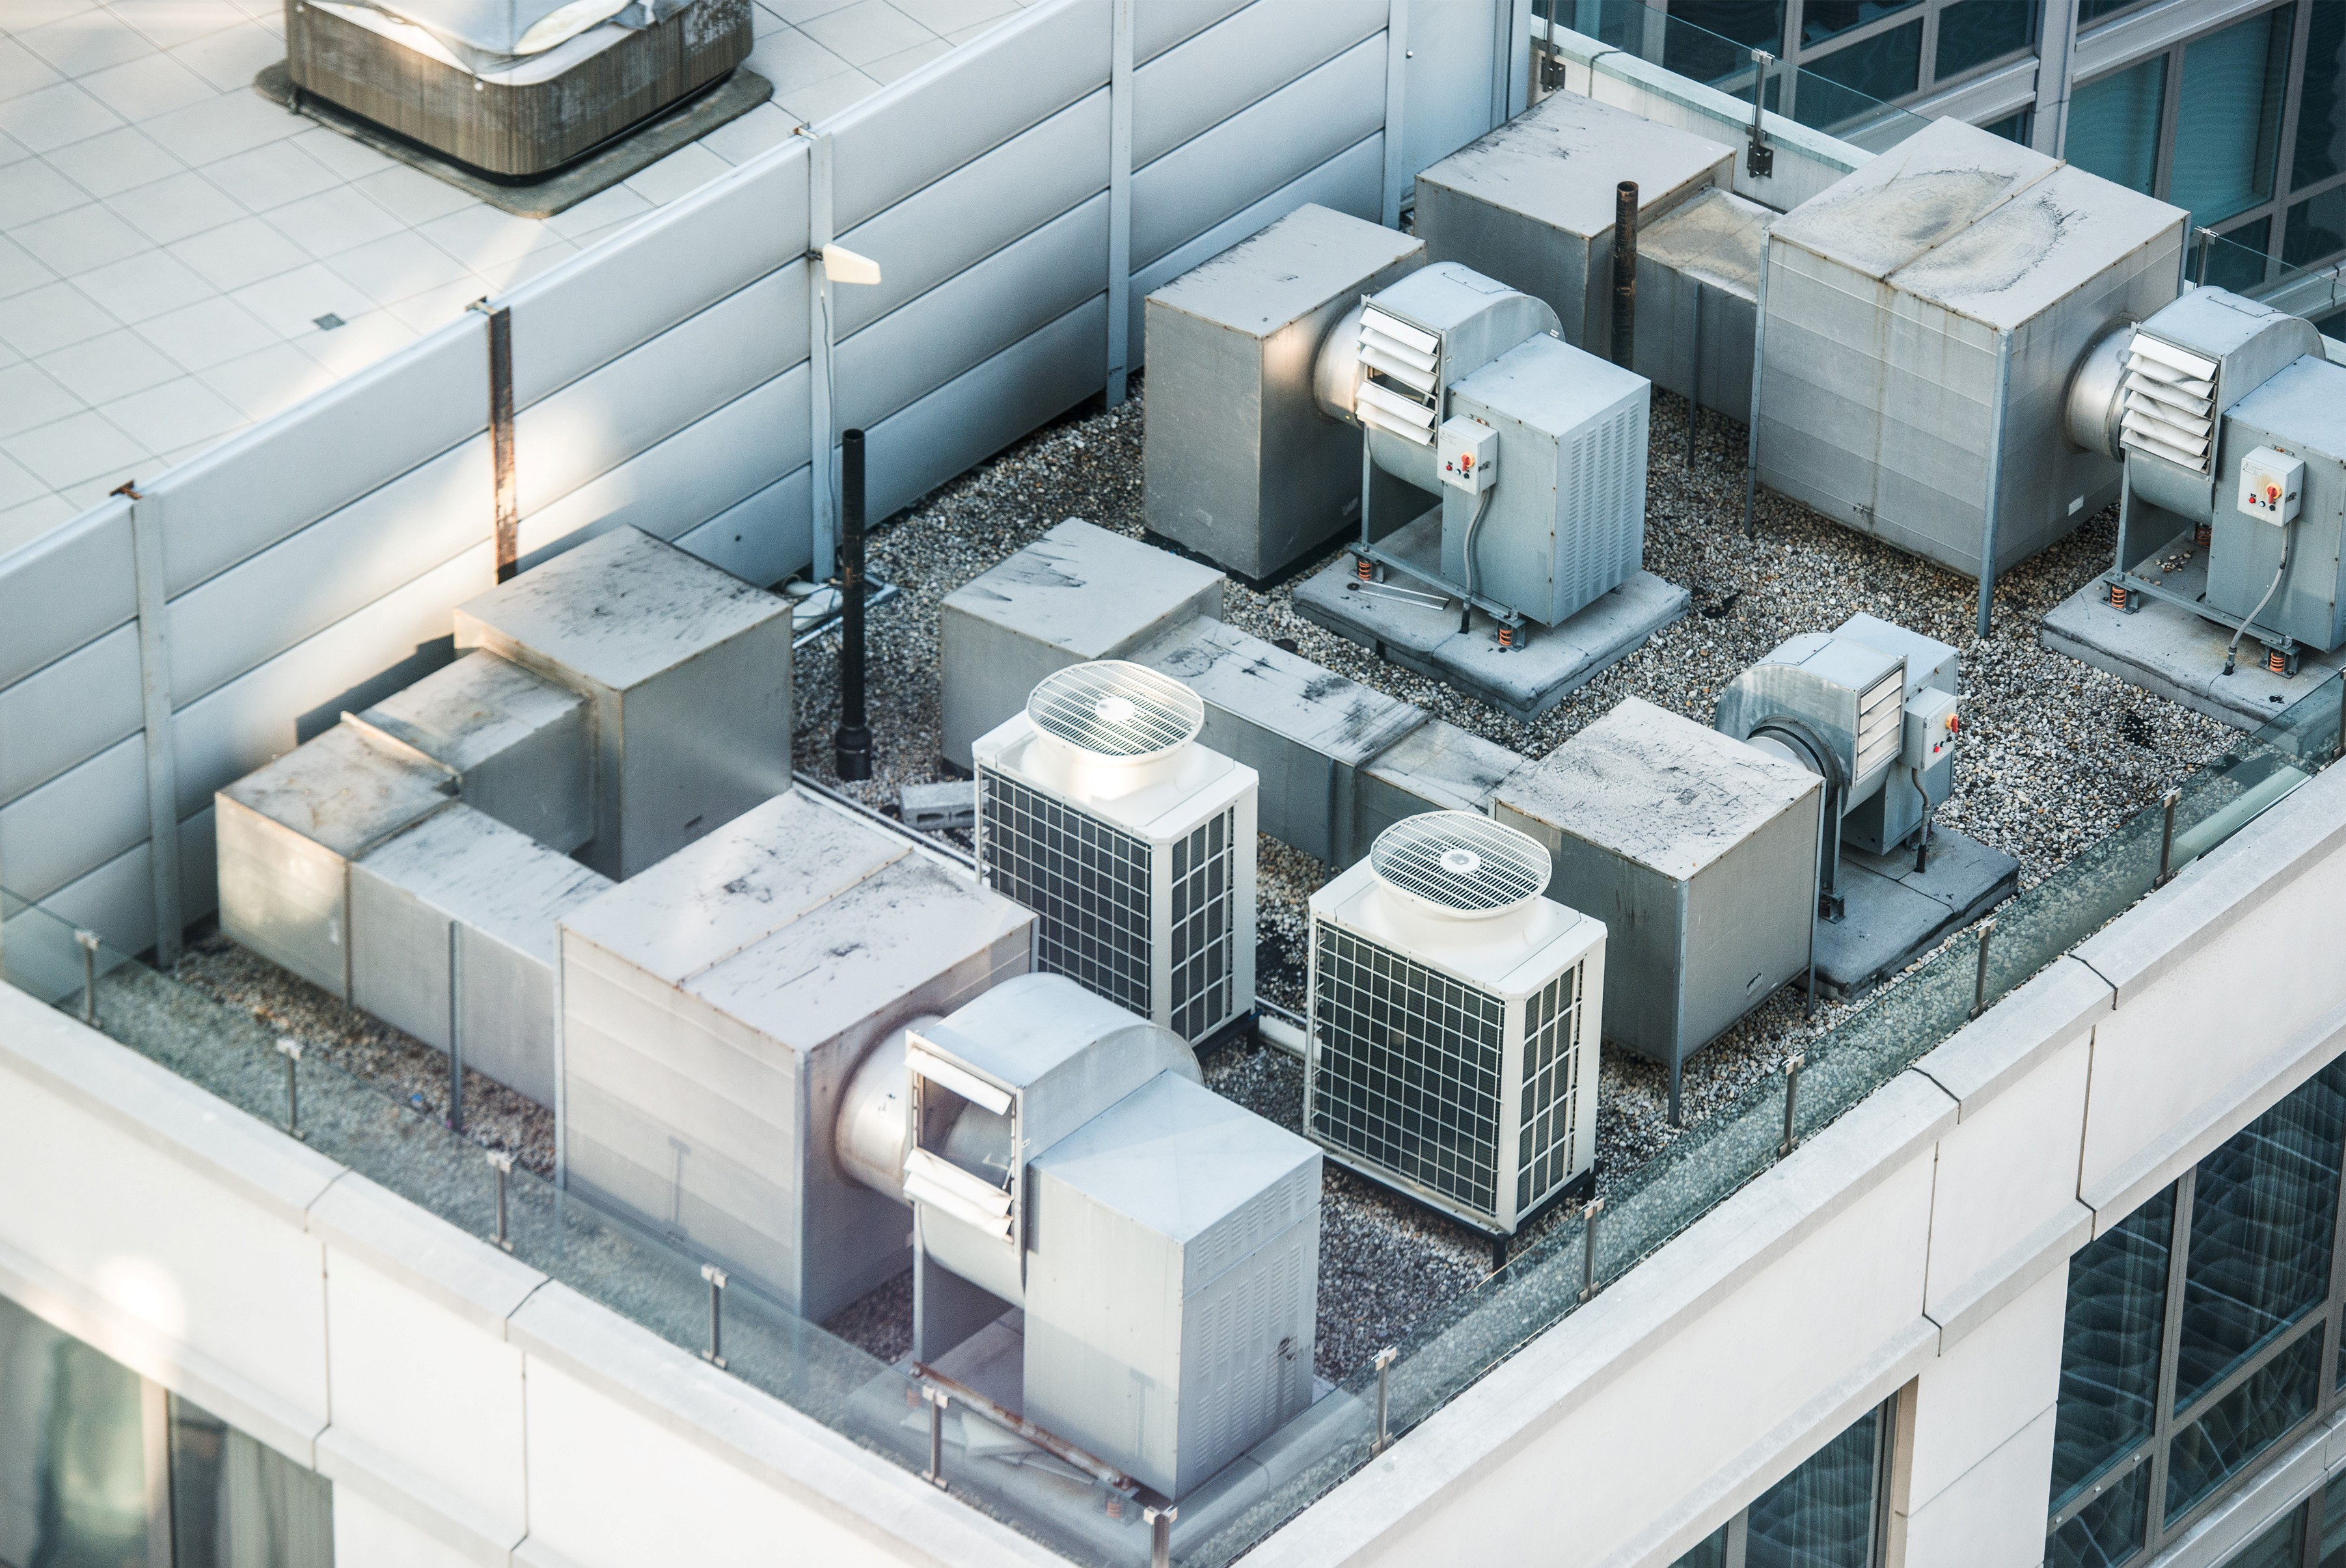 Commercial Exhaust Fans Prevent Humidity and Maintenance Issues in Apartment Complexes and Hotels